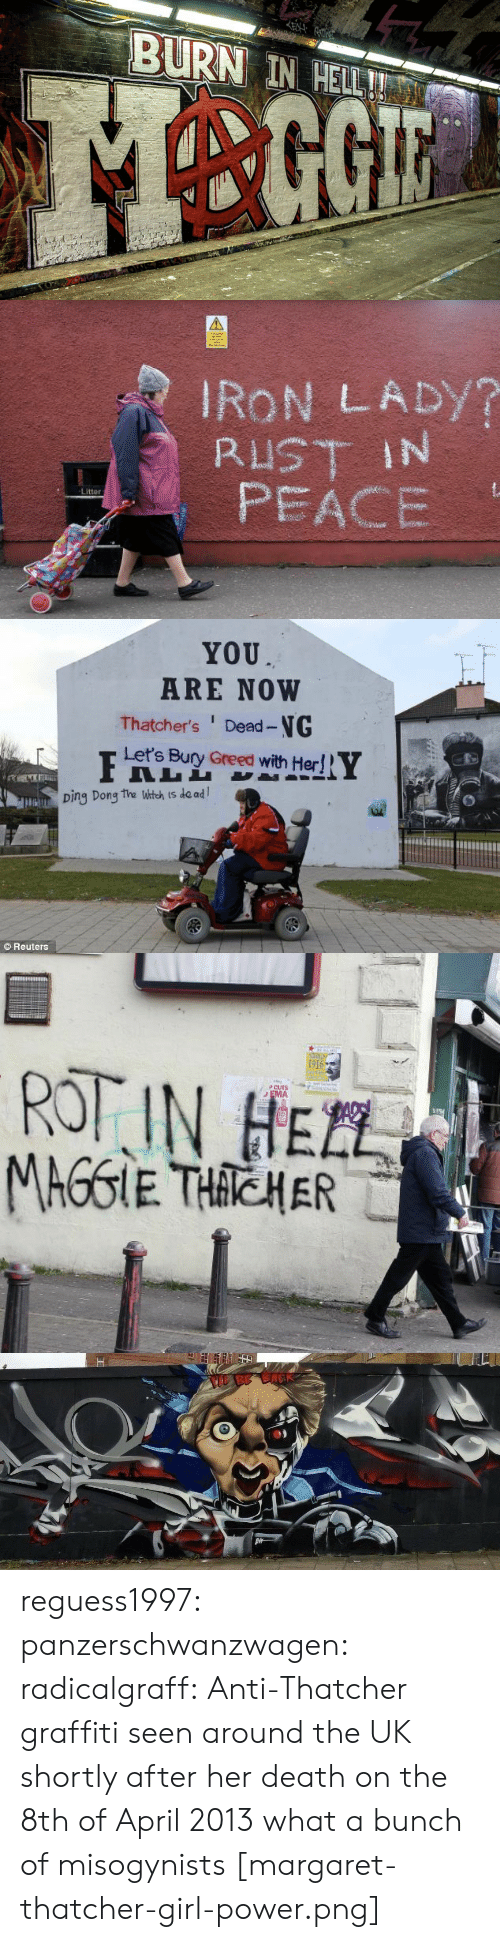 Reuters: EN  BURN IN HELL!   IRON LADY?  RUST IN  PEACE  Litter   YOU  ARE NOW  Thatcher's Dead-NG  Let's Bury Greed with Her!  Ding Dong the Witch is de ad  Reuters   1916  ROT IN HEZL  PCUTS  EMA  TEL  MAGGIE THACHER   BE BACK reguess1997: panzerschwanzwagen:   radicalgraff: Anti-Thatcher graffiti seen around the UK shortly after her death on the 8th of April 2013 what a bunch of misogynists   [margaret-thatcher-girl-power.png]